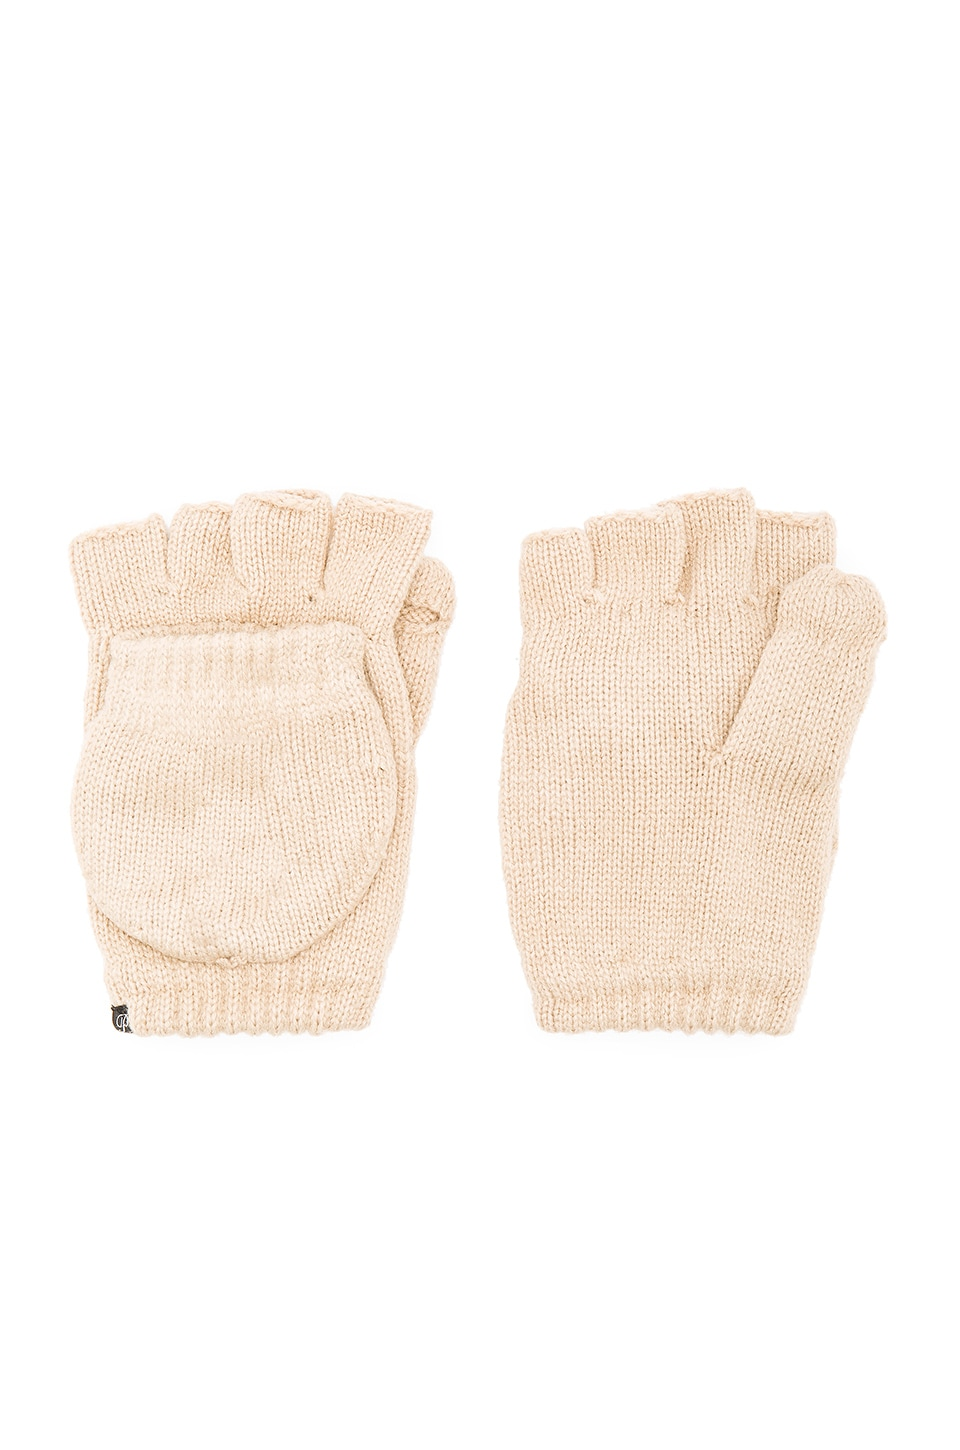 Plush Fleece Lined Texting Mittens in Tan